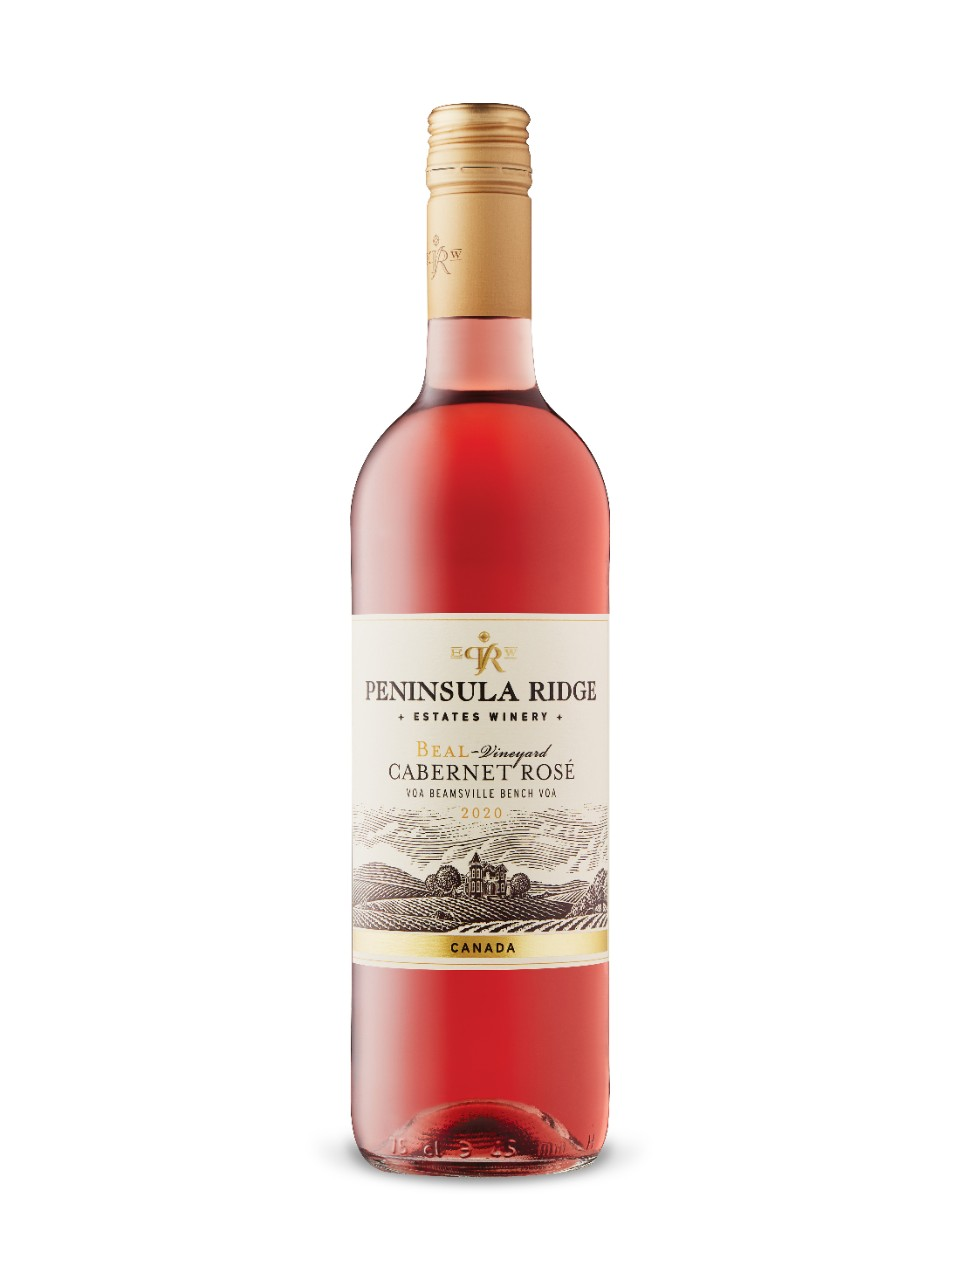 Cabernet Rosé Beal Vineyard Peninsula Ridge 2015